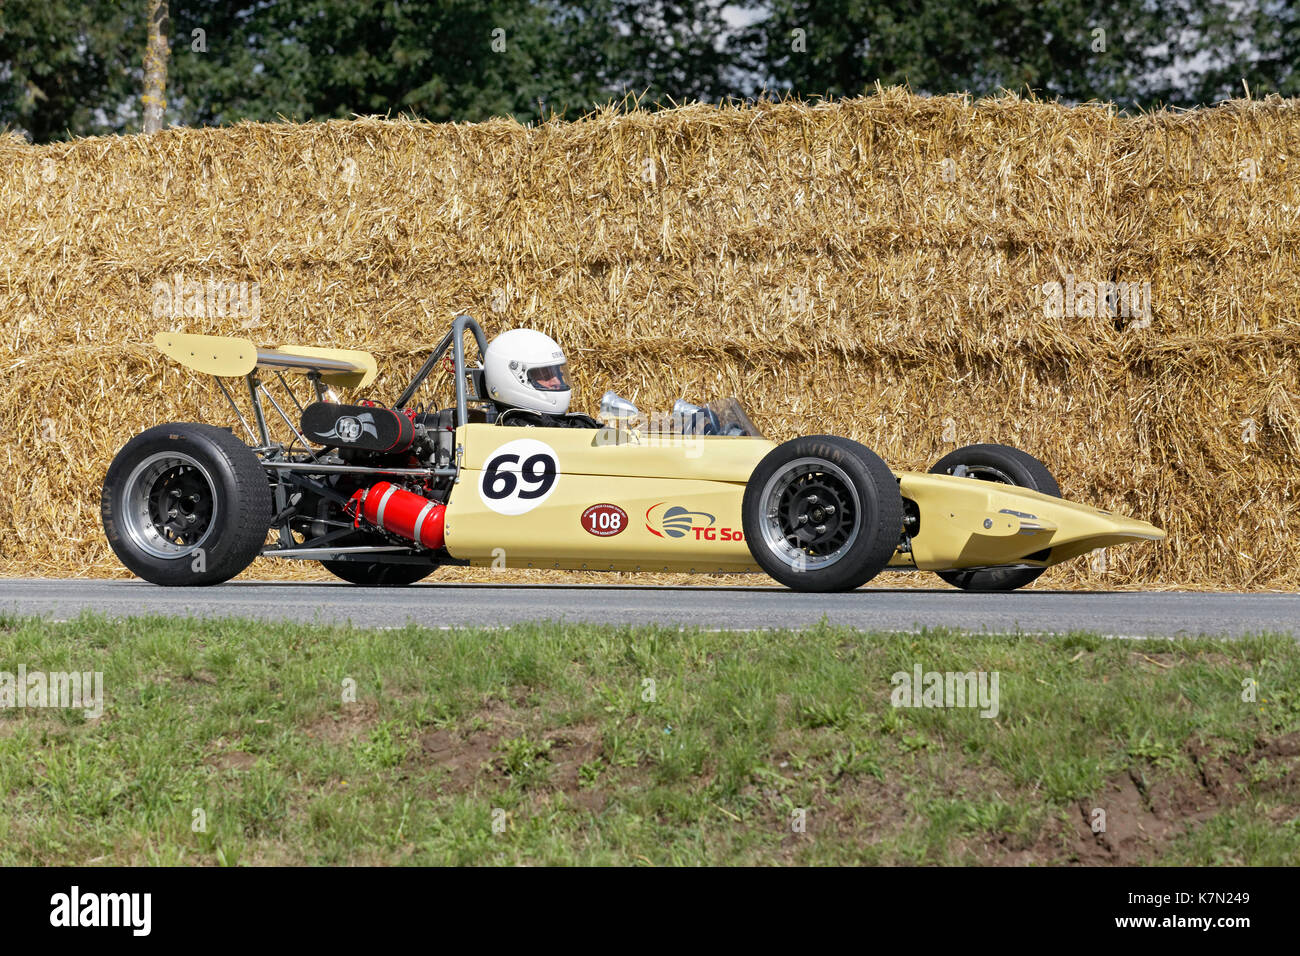 Sports Car Racing Lotus Stock Photos & Sports Car Racing Lotus Stock ...